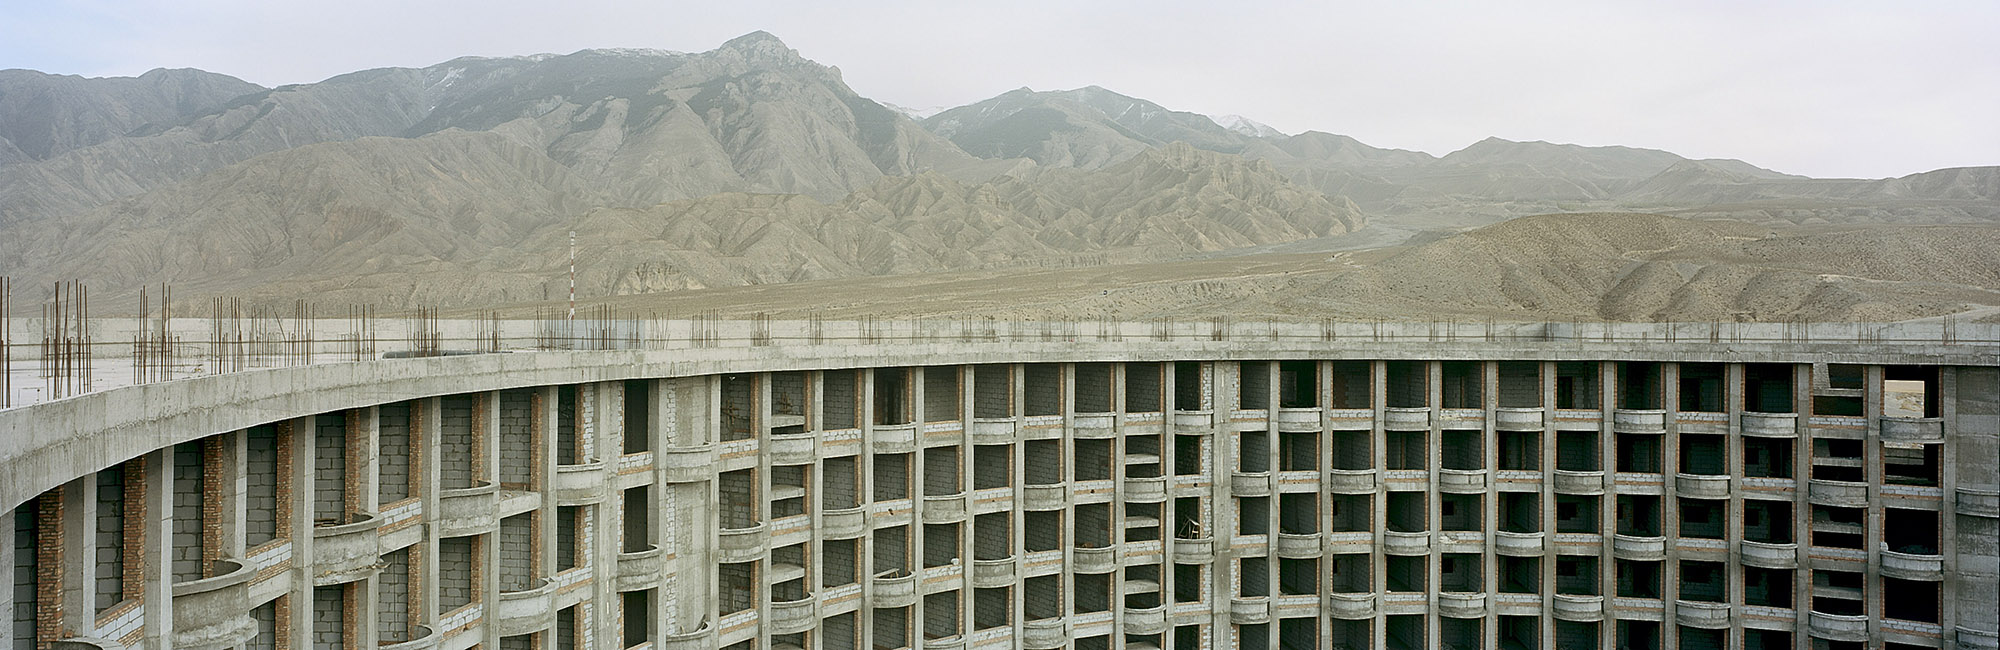 """Abandoned 5 Star Hotel Construction. Guide,Qinghai, China. 2014   One of the benefits of creating the Sanjiangyuan National Nature Reserve, according to China's State Council, would be """"ecological protection and construction"""" on the plateau. Development in the protected ecosystem of the Reserve, however, soon extended beyond tourism, to the mining of gold and other minerals, road construction, and real estate development. Meanwhile some of the tourism-related projects were lost to changing political winds: according to a local security guard, construction on this 5-star hotel came to a halt when developers couldn't secure the necessary permits after a turnover in local government personnel. While much new construction in the area has reached completion, scientists have raised concerns that large towns and cities, and the infrastructure that connects them create higher densities of humans that will inevitably increase the stress on the local ecology."""